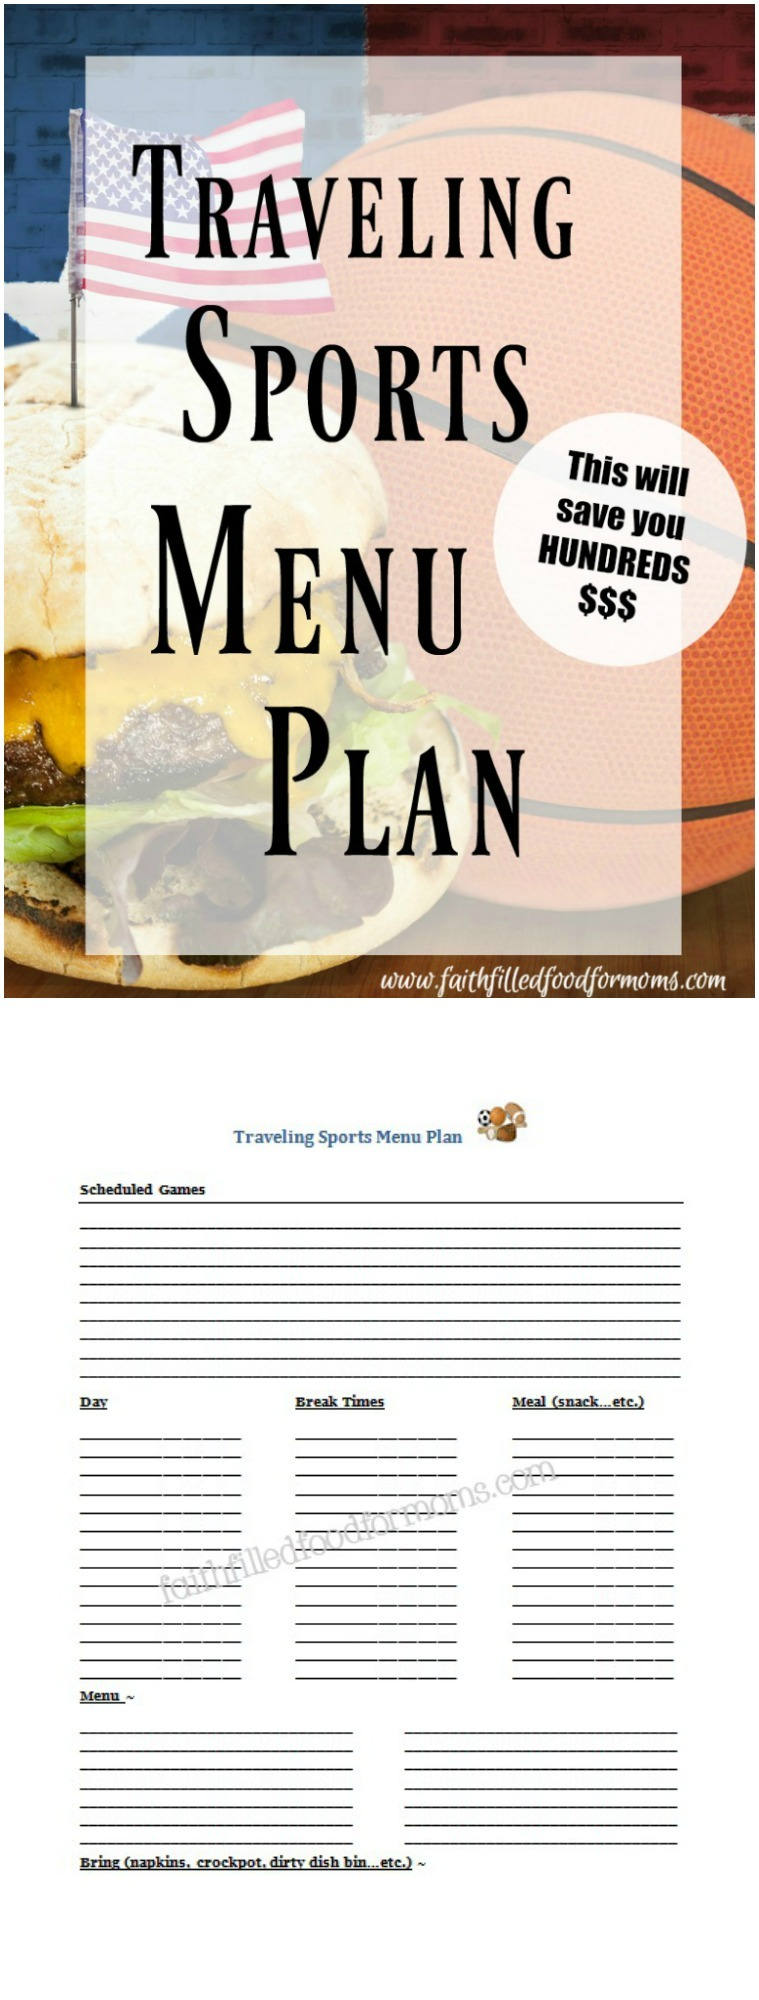 Traveling Sports Menu Plan with free Printable Planner!